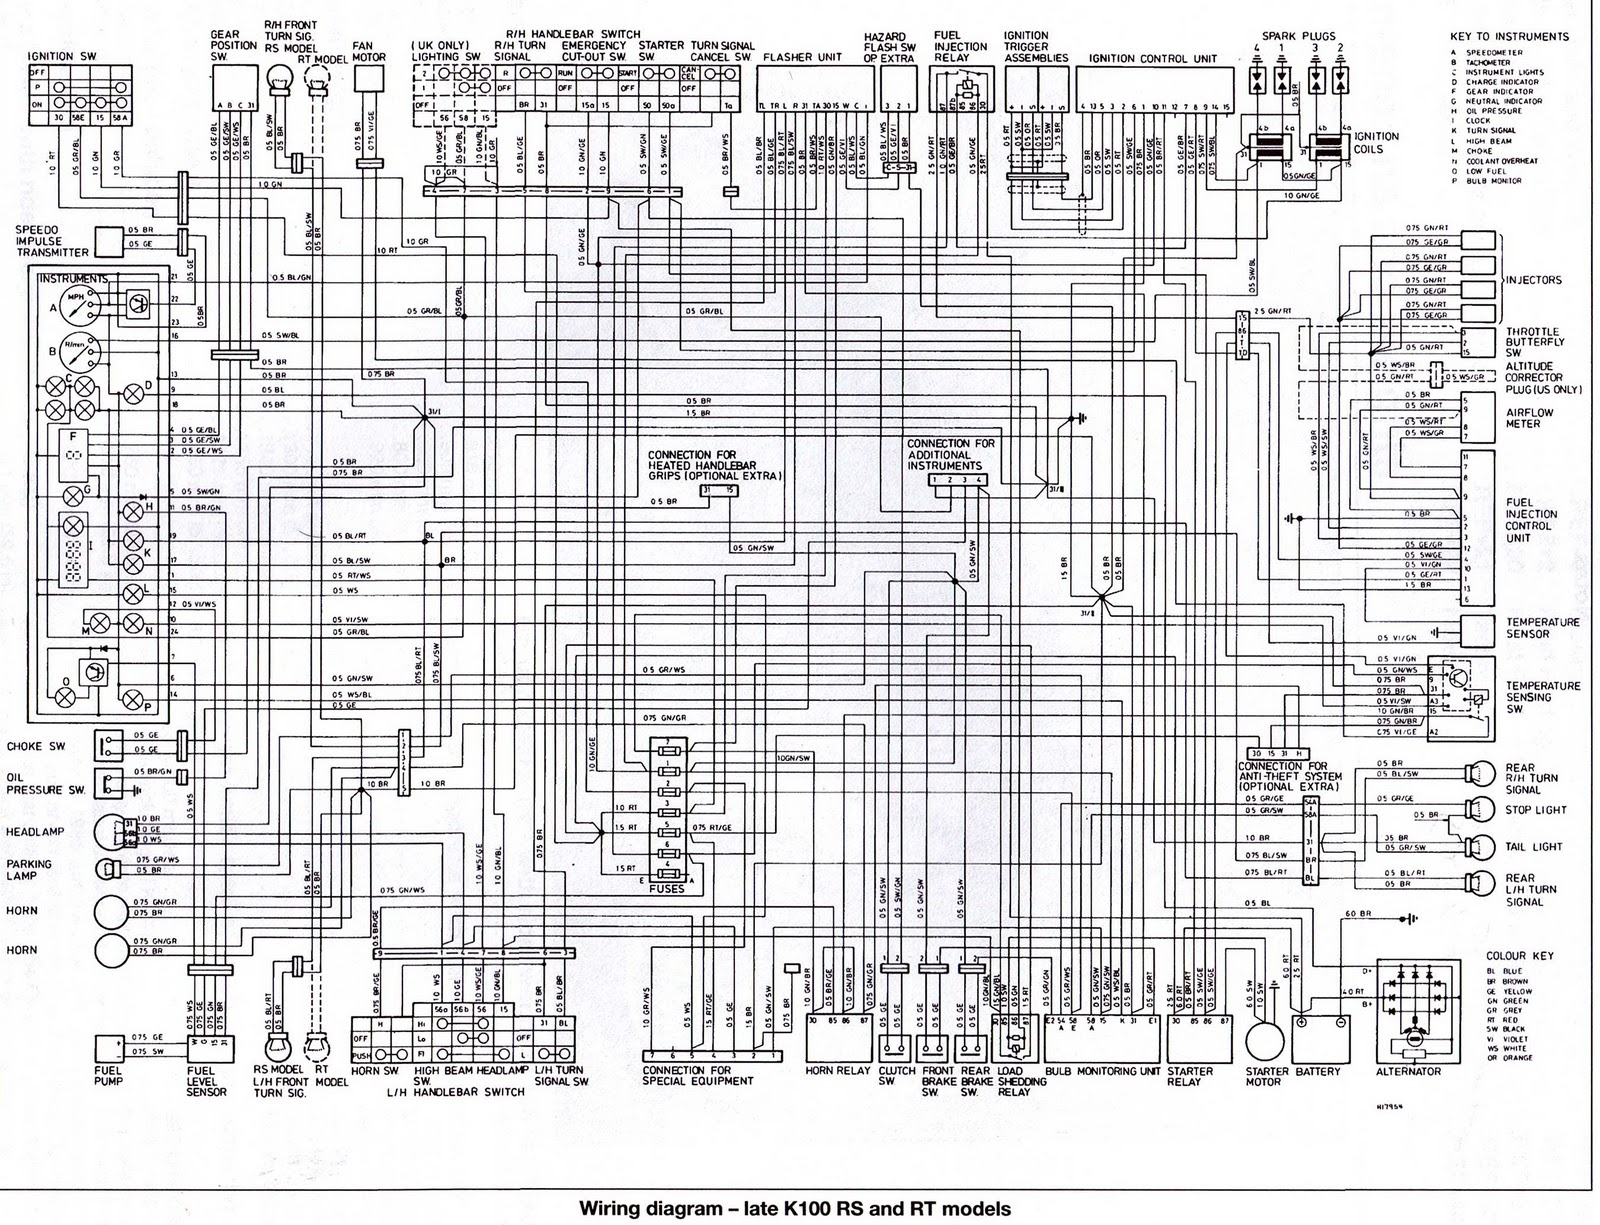 BMW+KR100RS RT+Wiring+Diagram bmw e38 wiring diagram bmw wds download \u2022 free wiring diagrams bmw e38 radio wiring diagram at pacquiaovsvargaslive.co